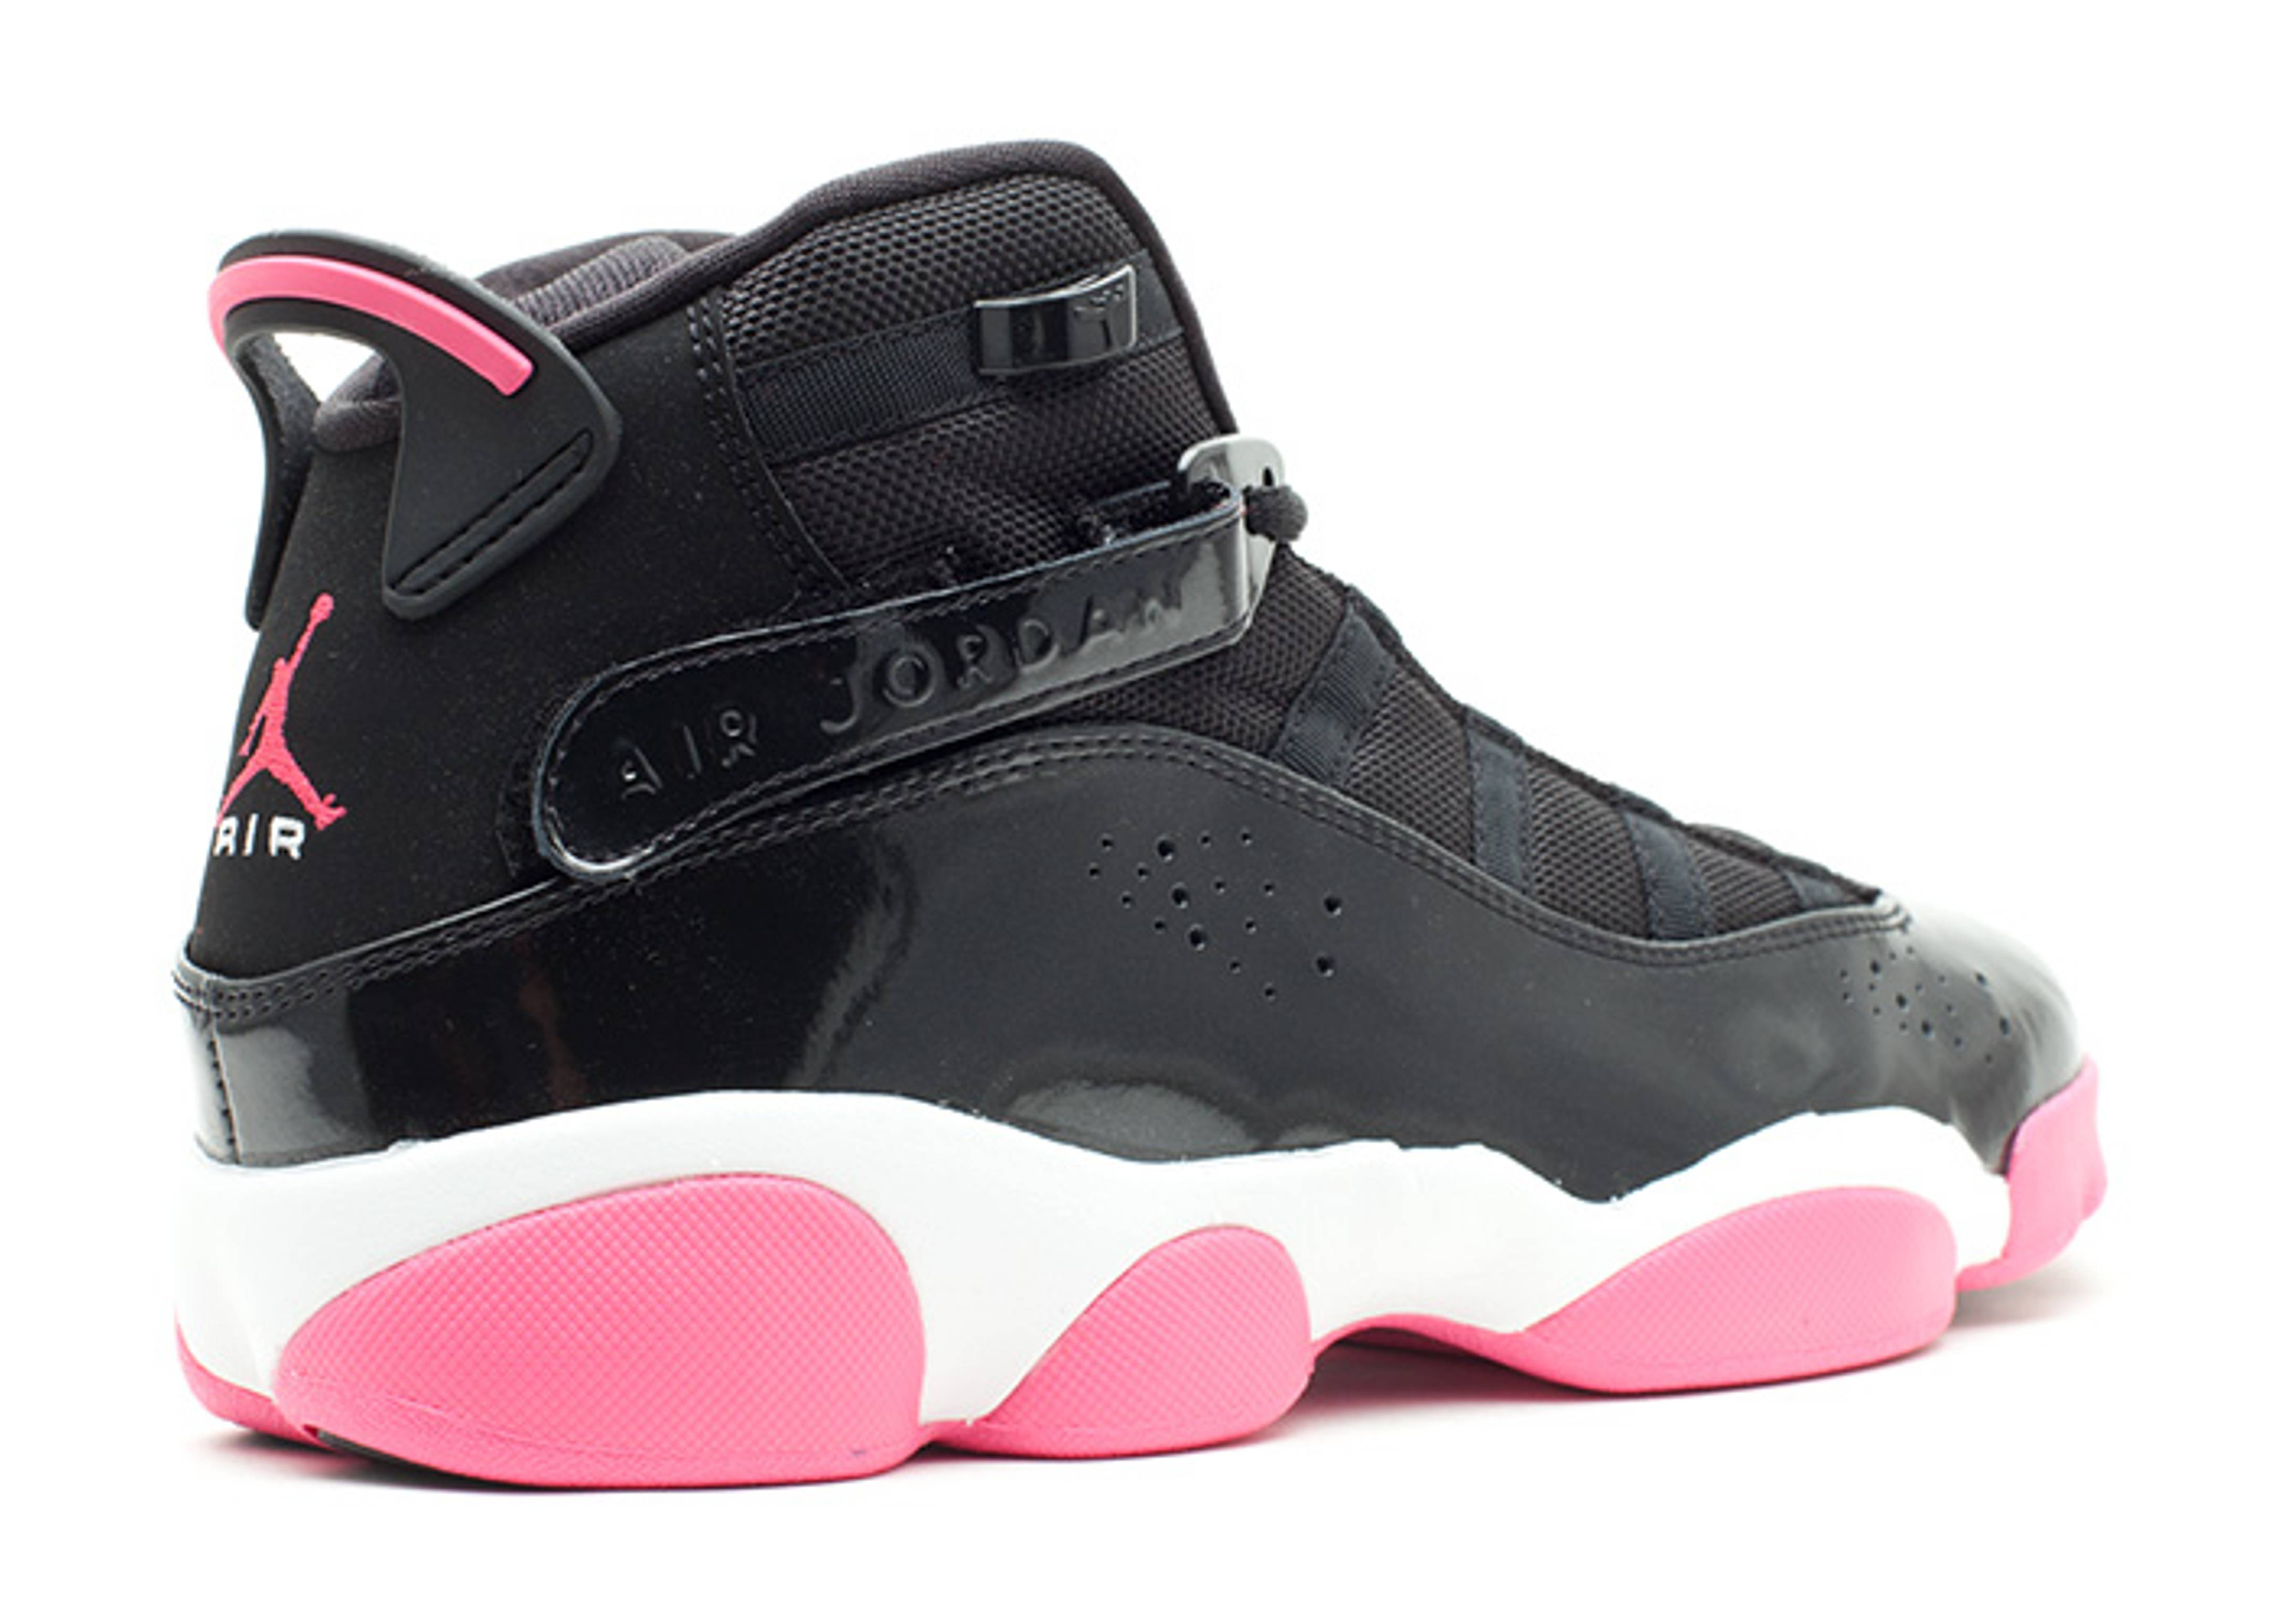 671a8135ae41 Girls Jordan 6 Rings (gs) - Air Jordan - 323399 001 - black spark-white